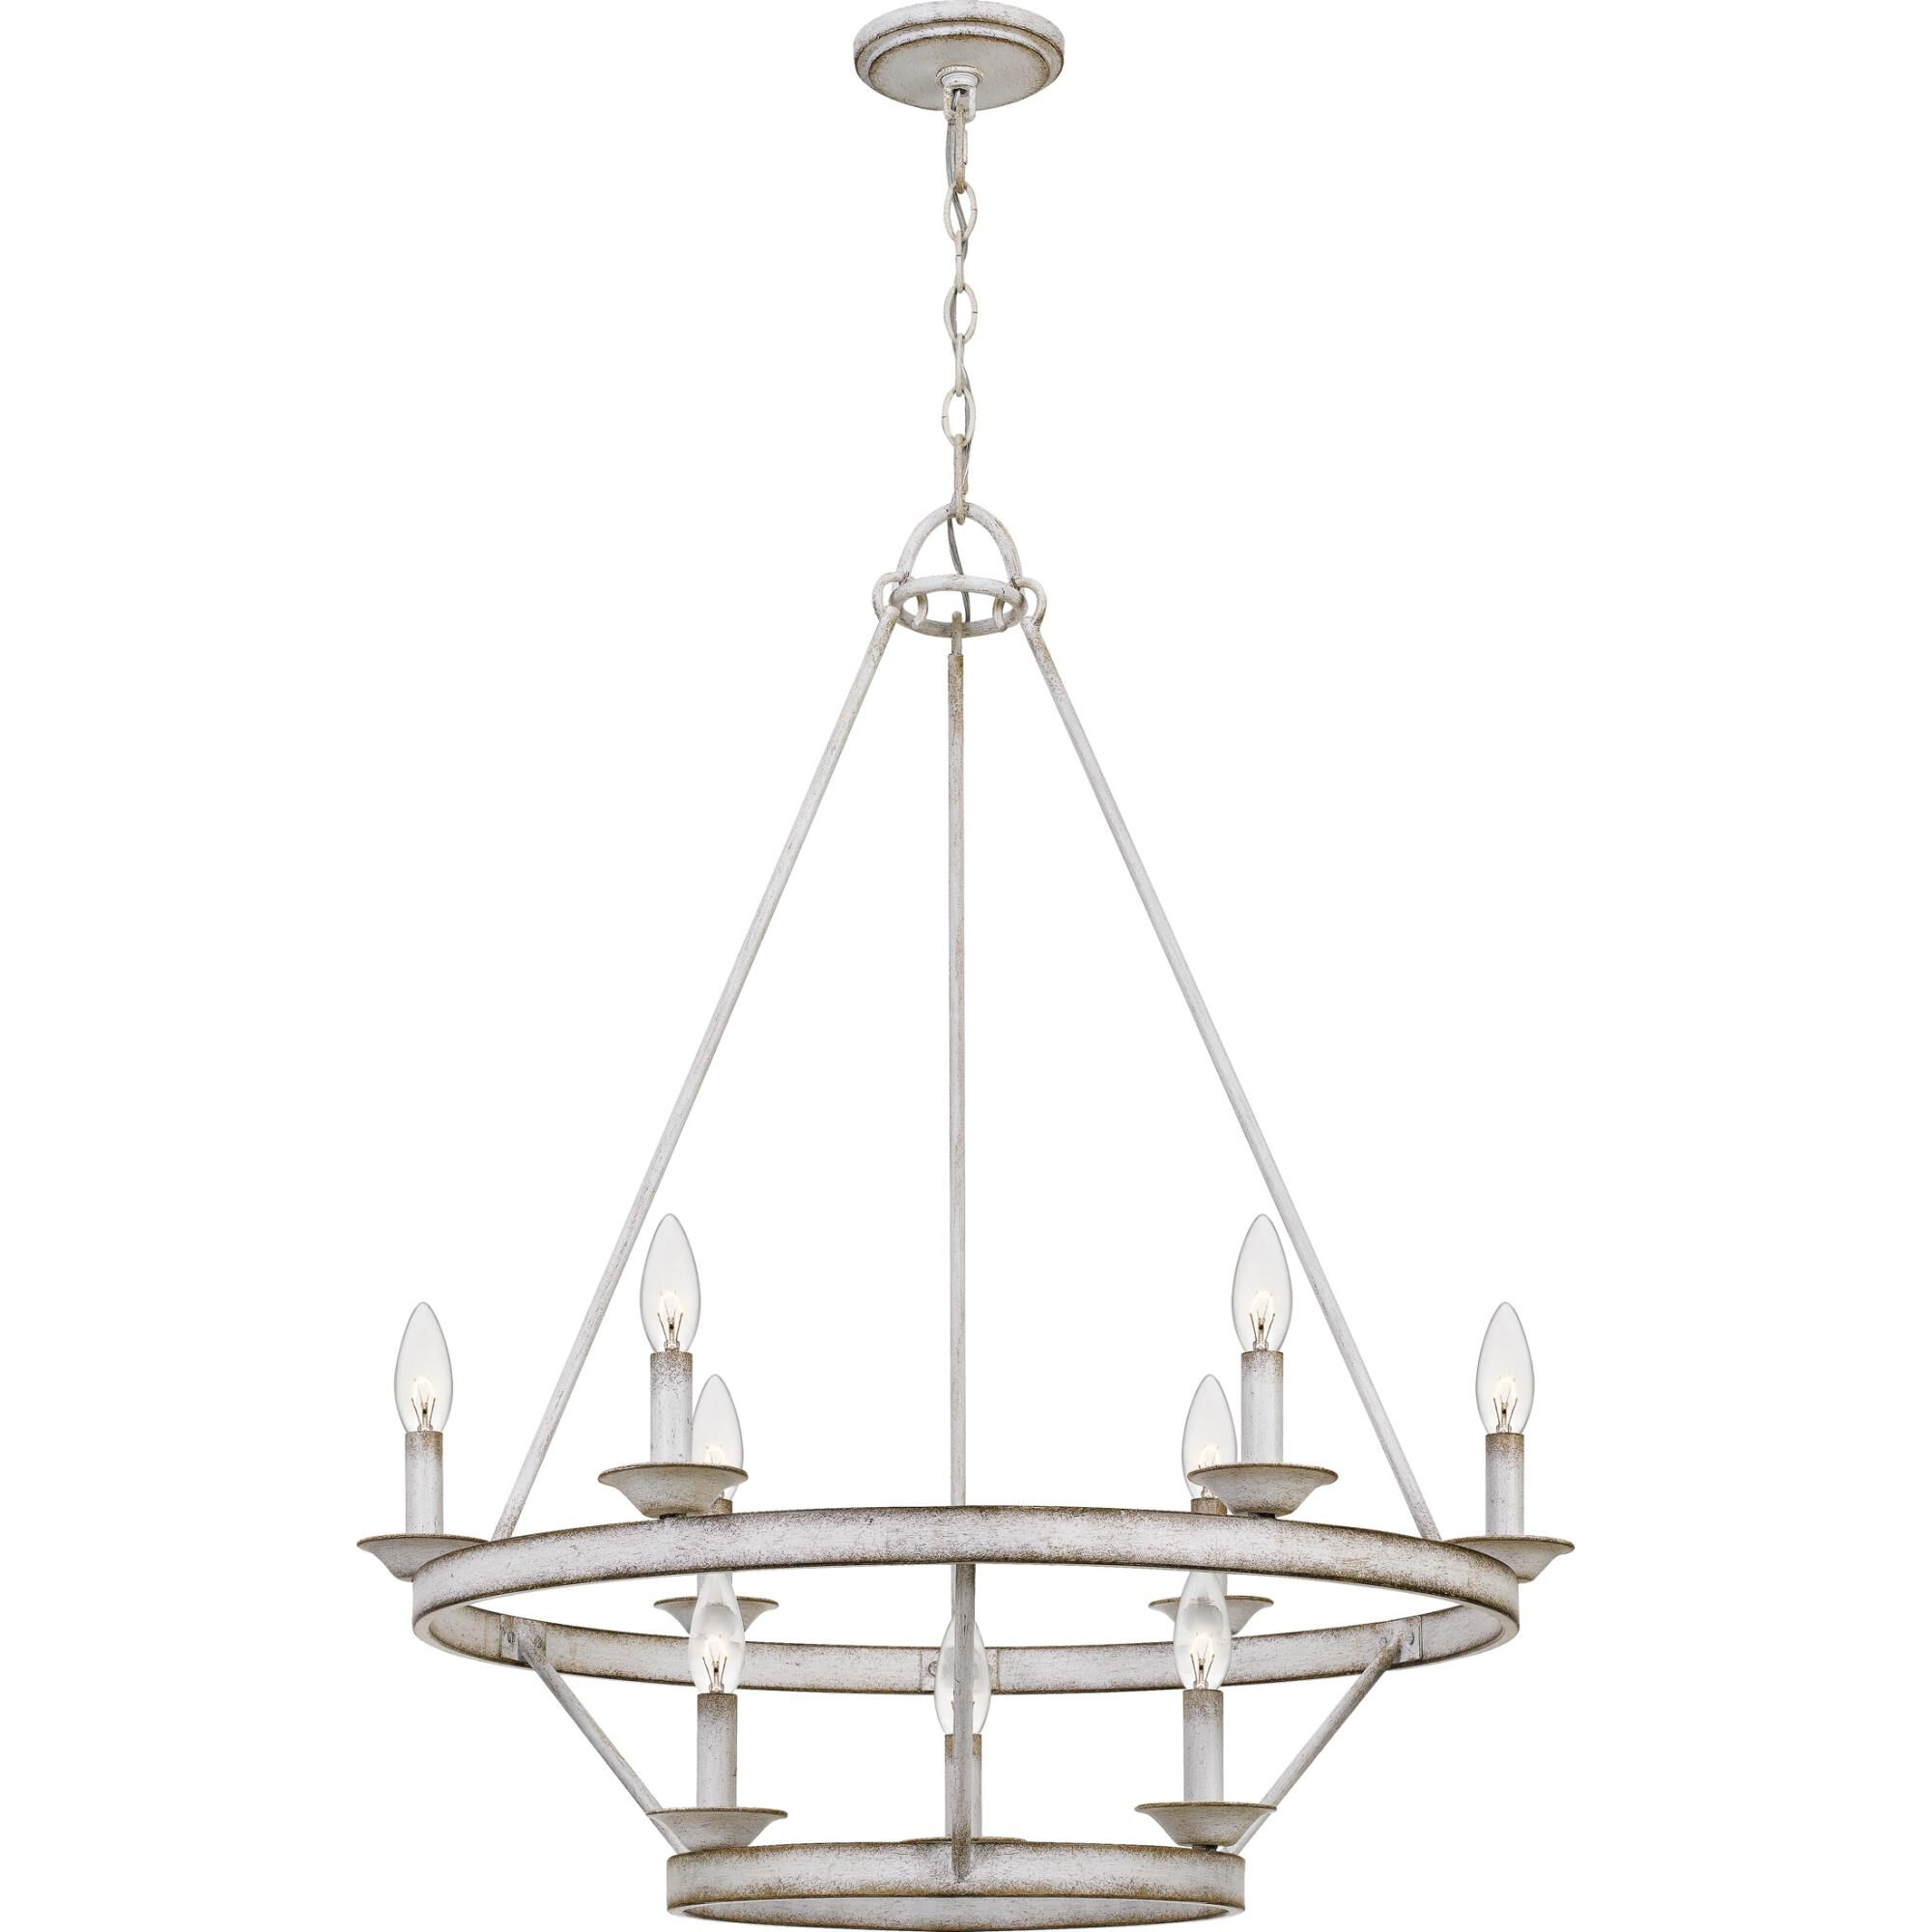 Quoizel Corral 28 Inch 9 Light Chandelier Corral - Crl5009awh - Transitional